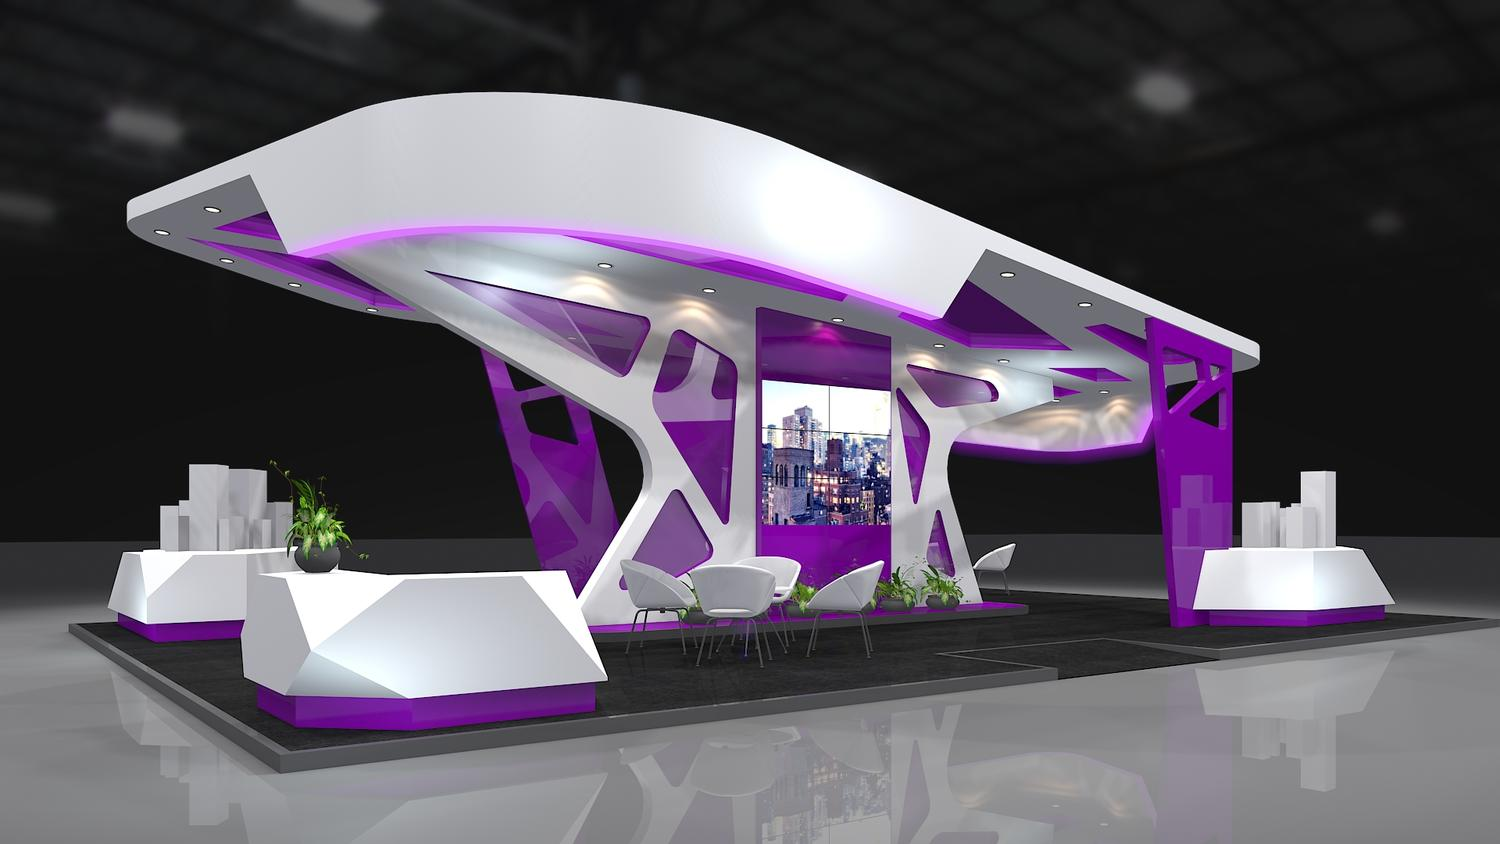 Exhibition booth 3d design by abellangbid on envato studio 3d design free